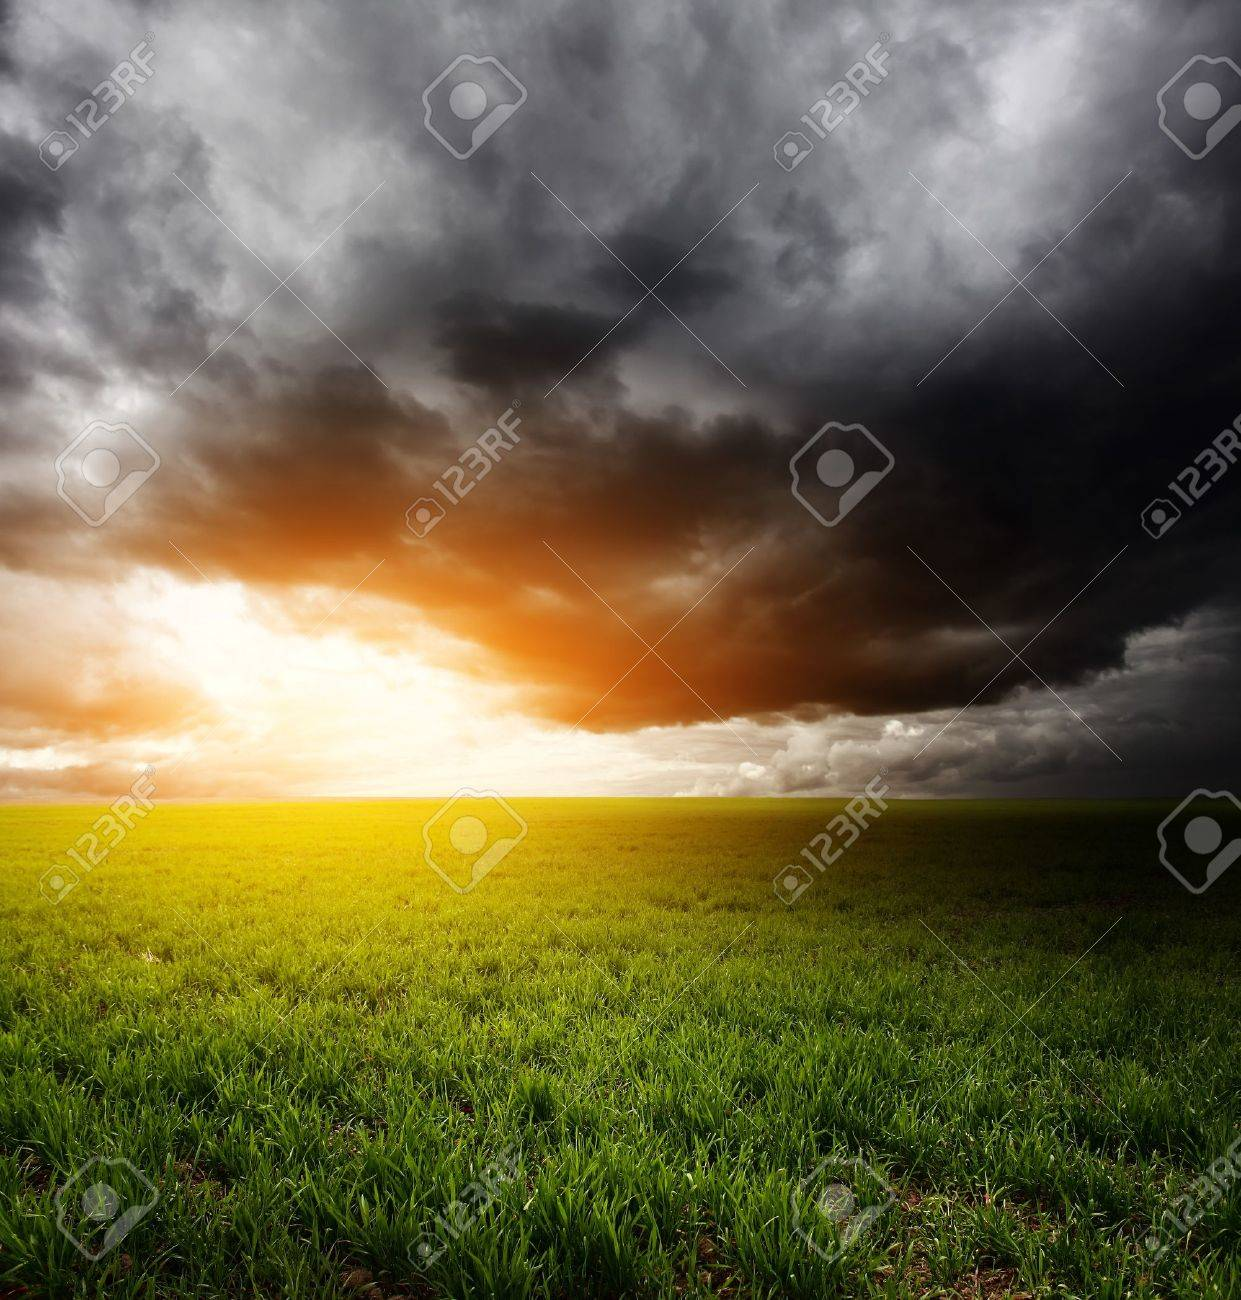 Storm dark clouds and light over field with green grass Stock Photo - 7791428